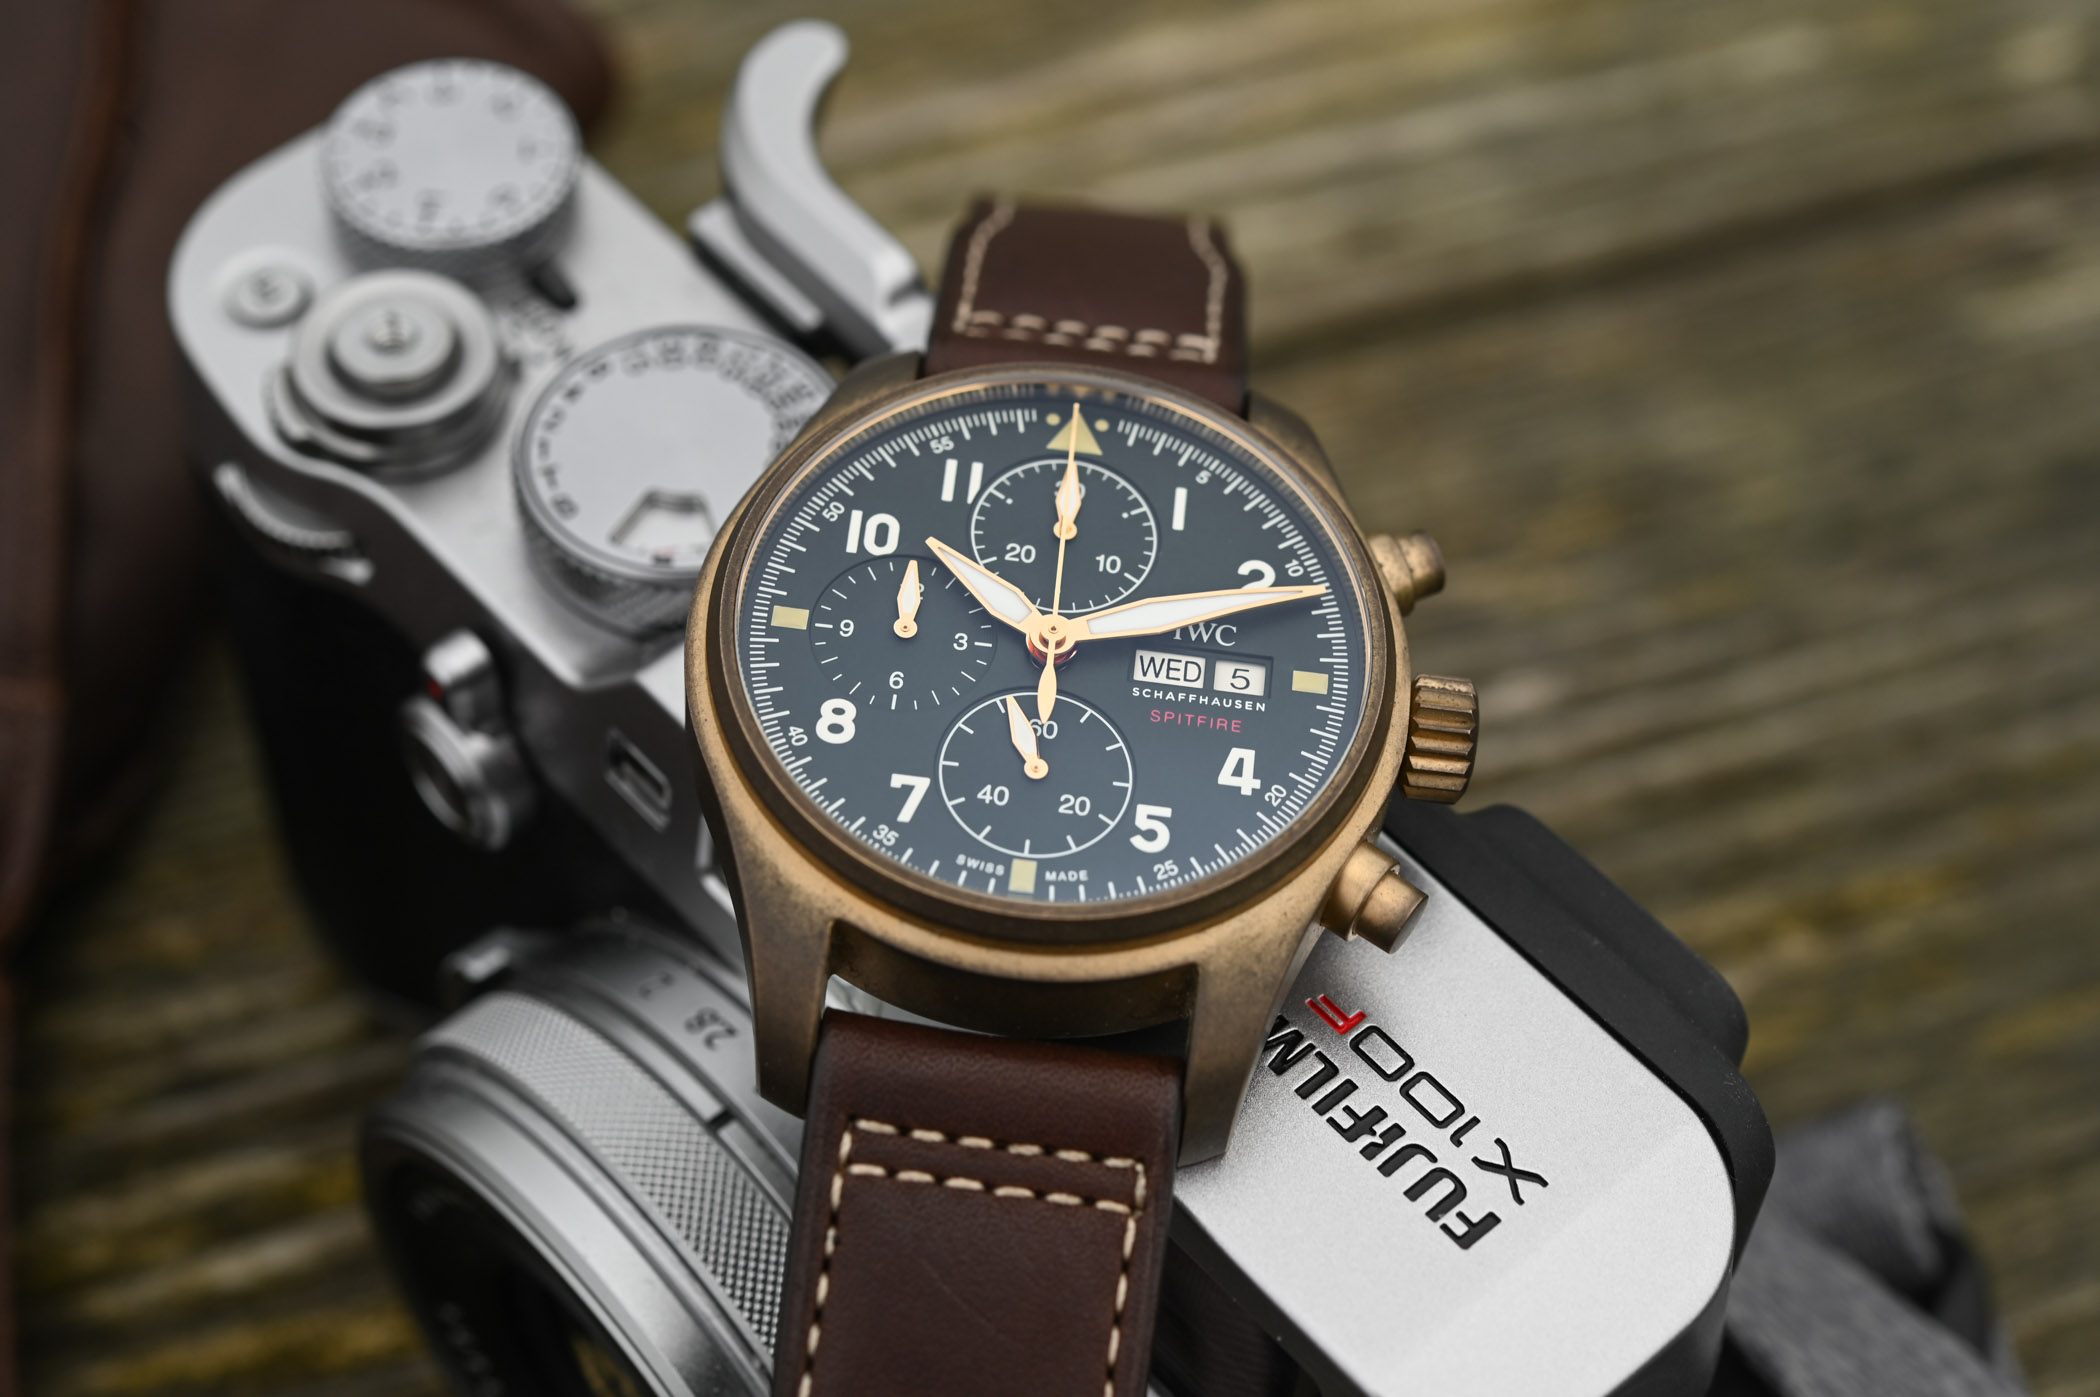 Iwc Replica Iwc Pilot S Fake Watch Chronograph With 41mm Case Manufacture